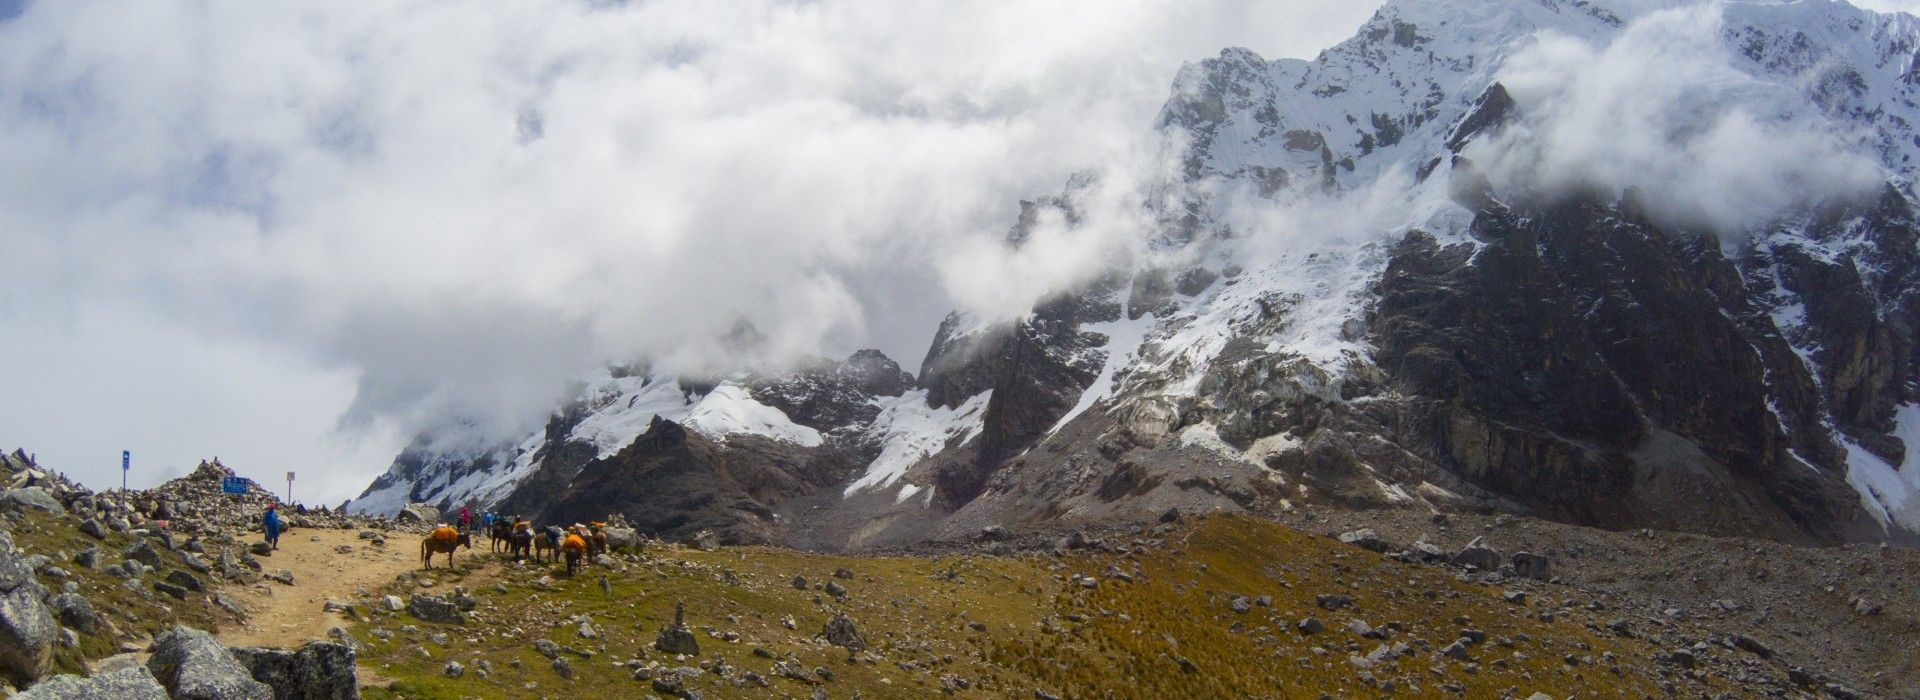 Adventure and sport activities Tours in Machu Picchu